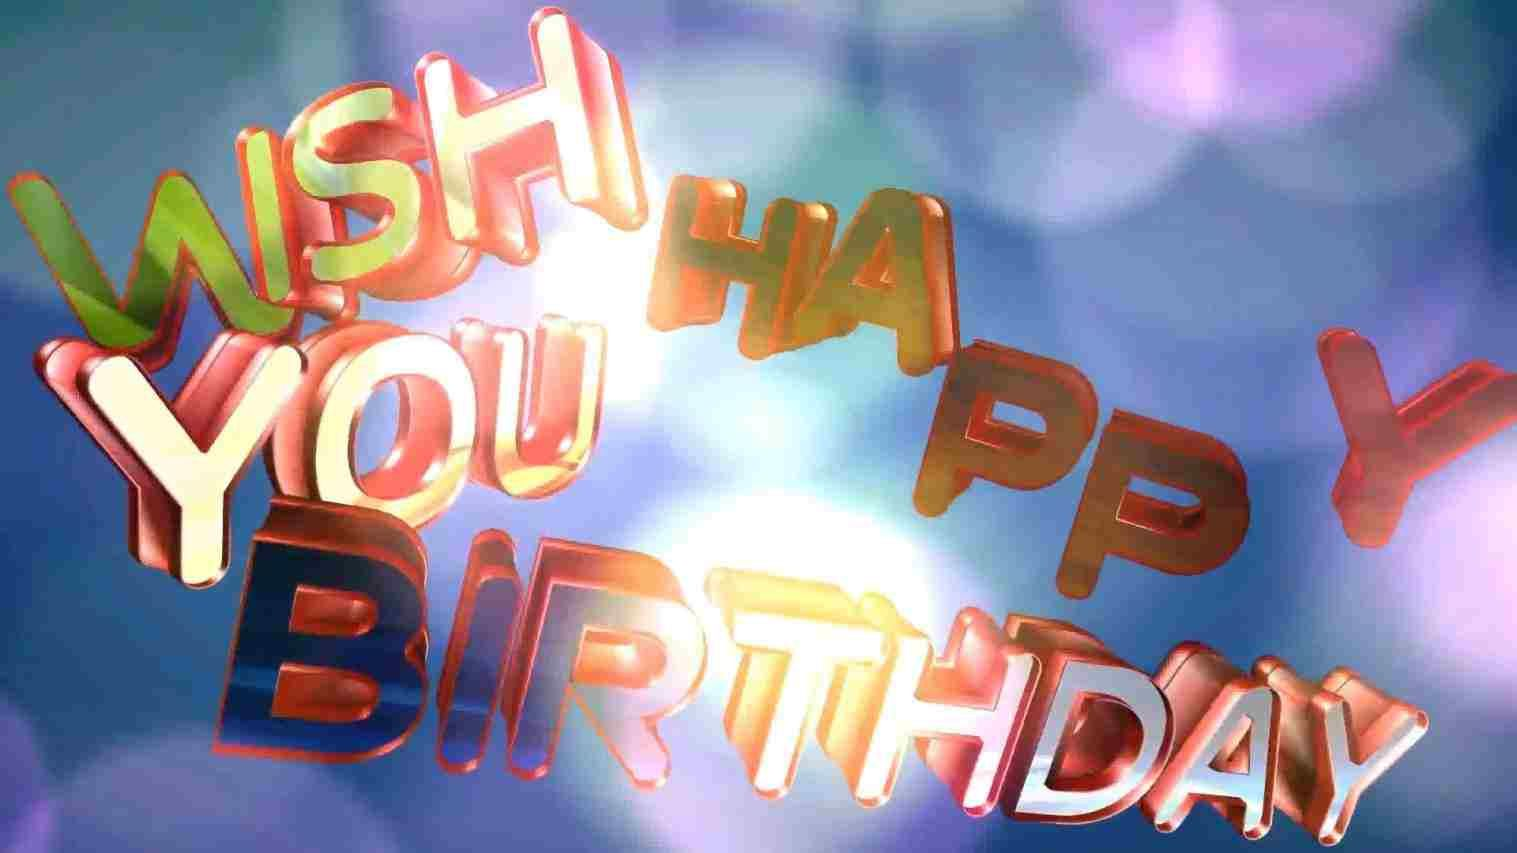 For facebook wall with music videos animation hd happy wishes for facebook wall with music videos animation hd happy wishes daughter images quotes message happy free birthday cards for facebook wall withjpg happy bookmarktalkfo Choice Image